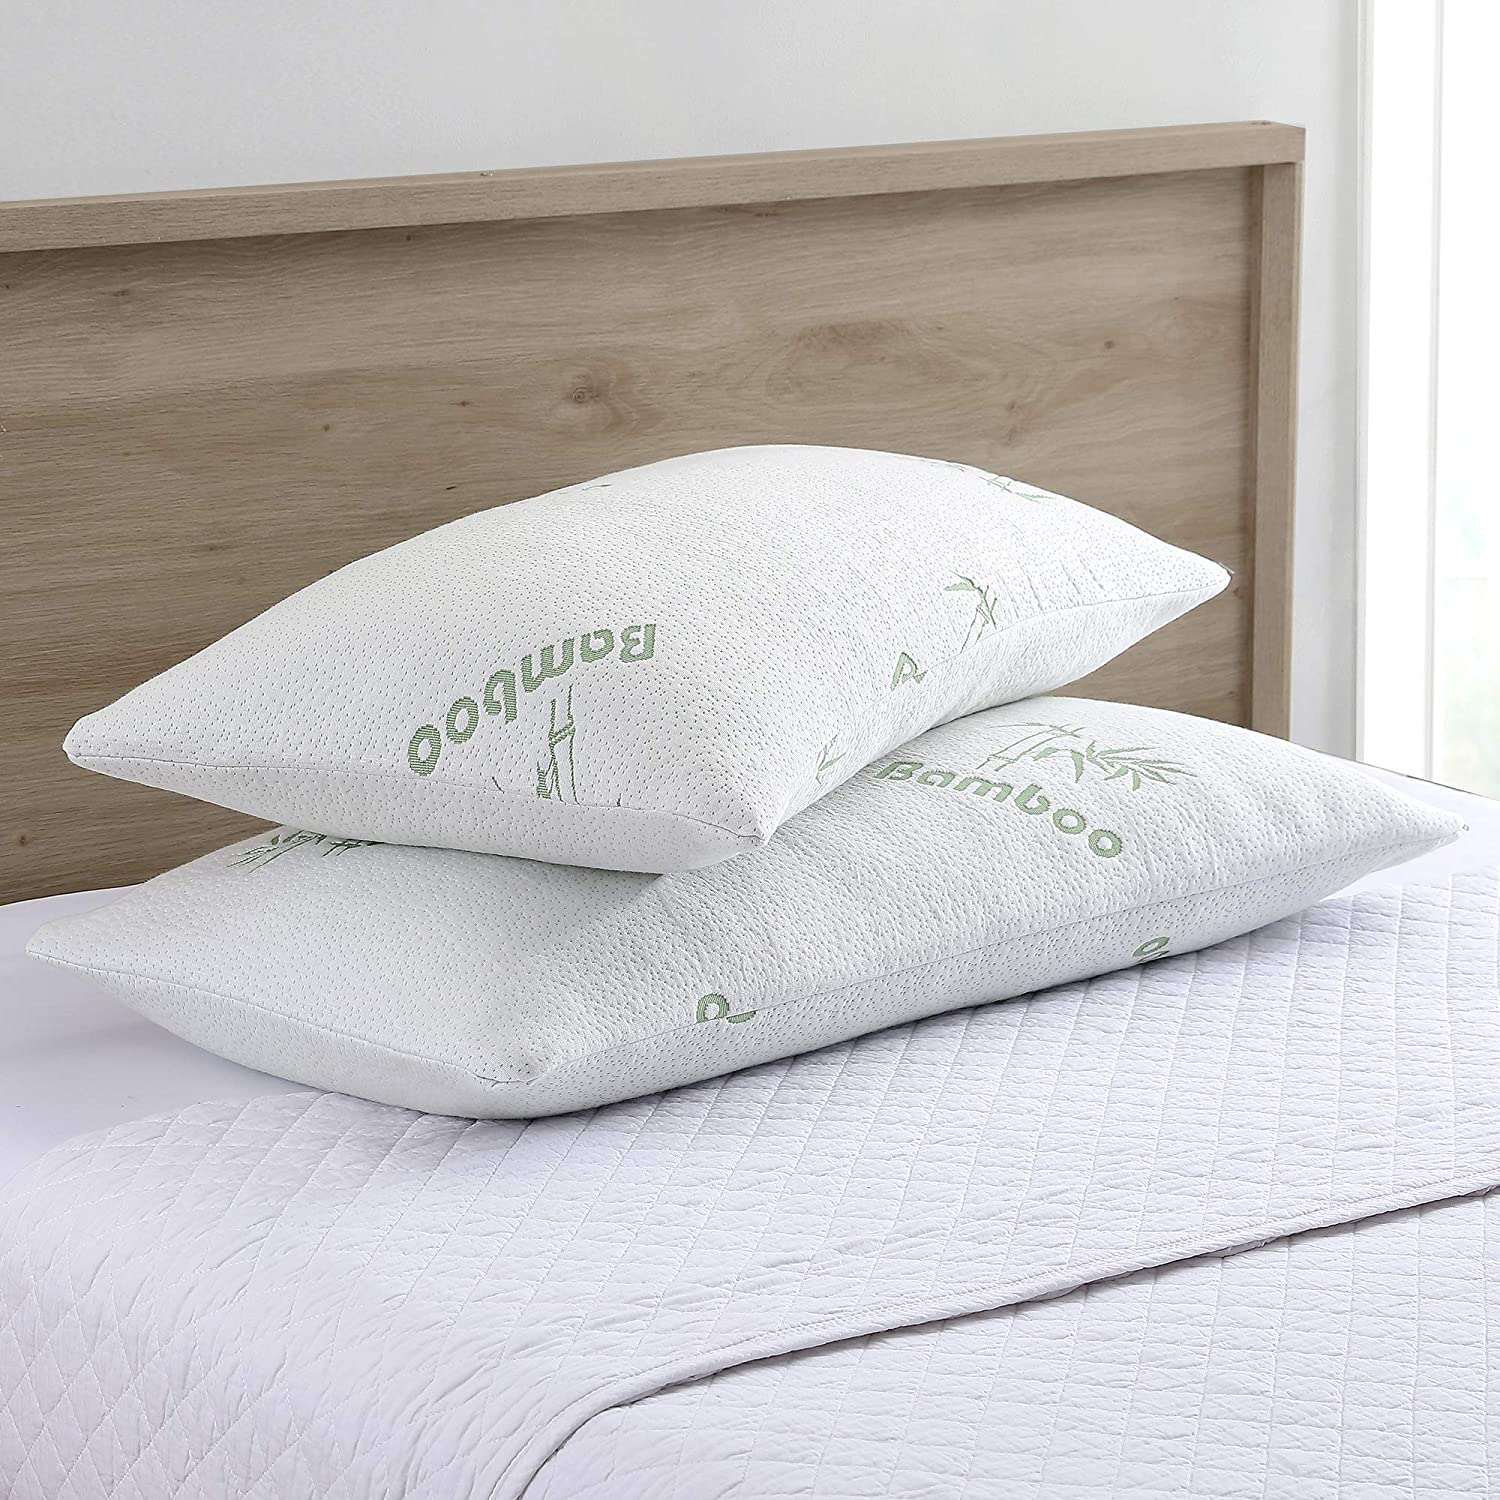 Amrapur Overseas Bamboo Memory Foam Pillow (2 Pack), King, White, 2 Piece